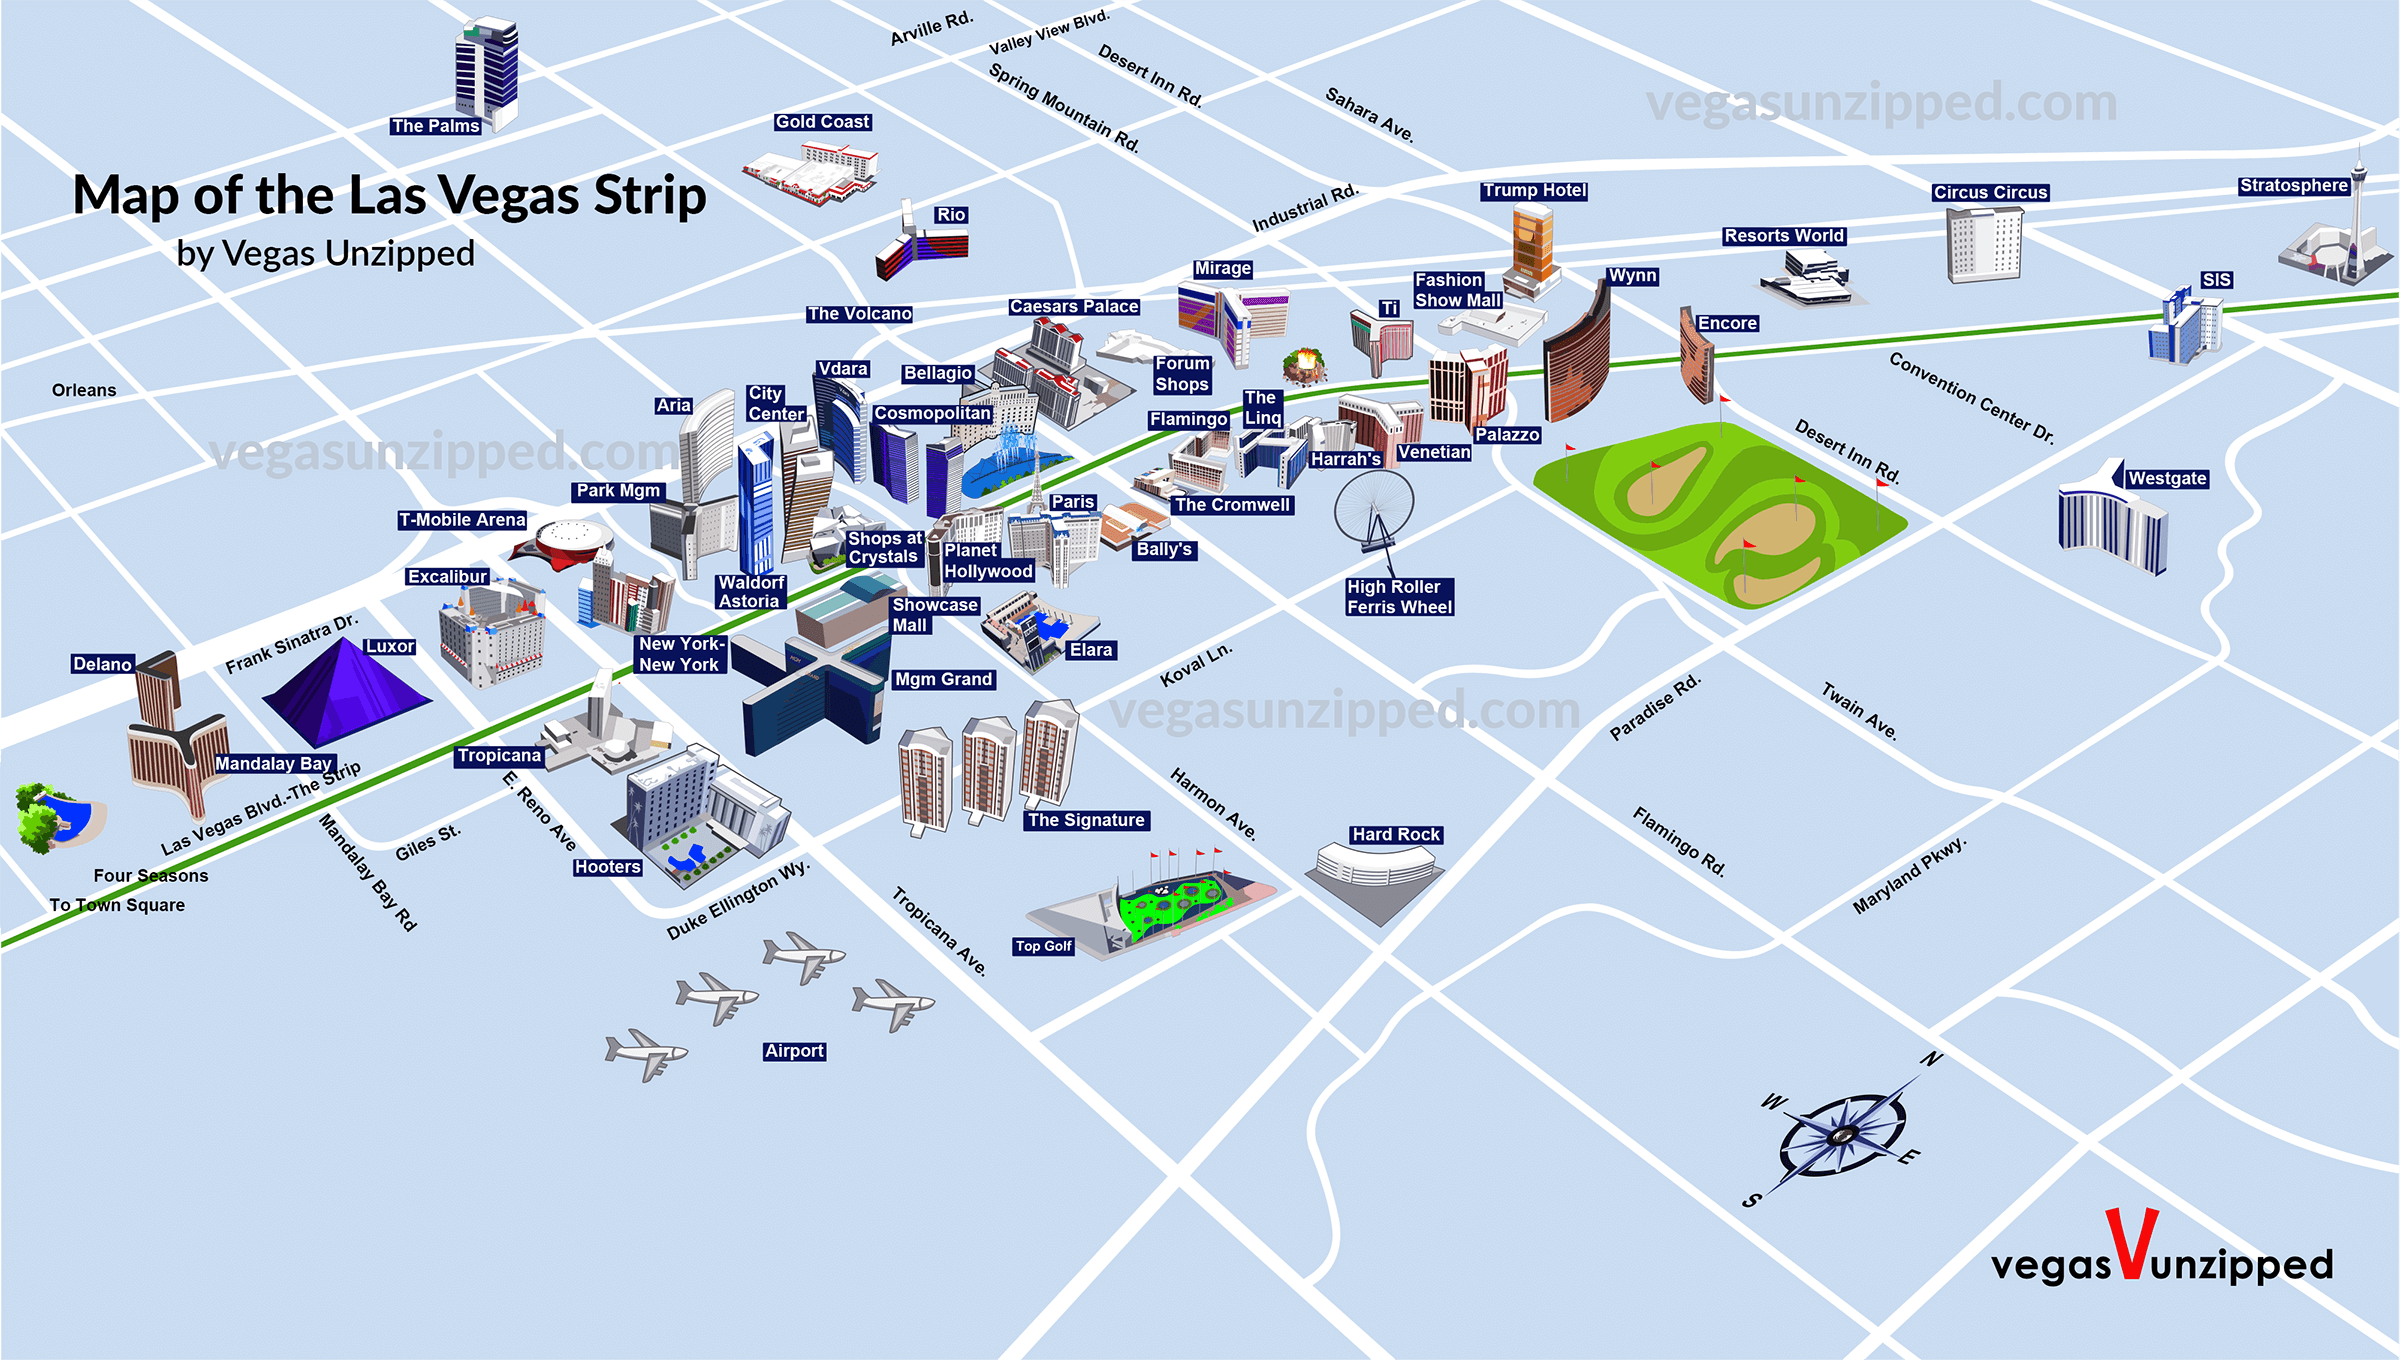 Las Vegas Strip Map - Casino Hotel Maps [2019 ] - PDF, 3D ...